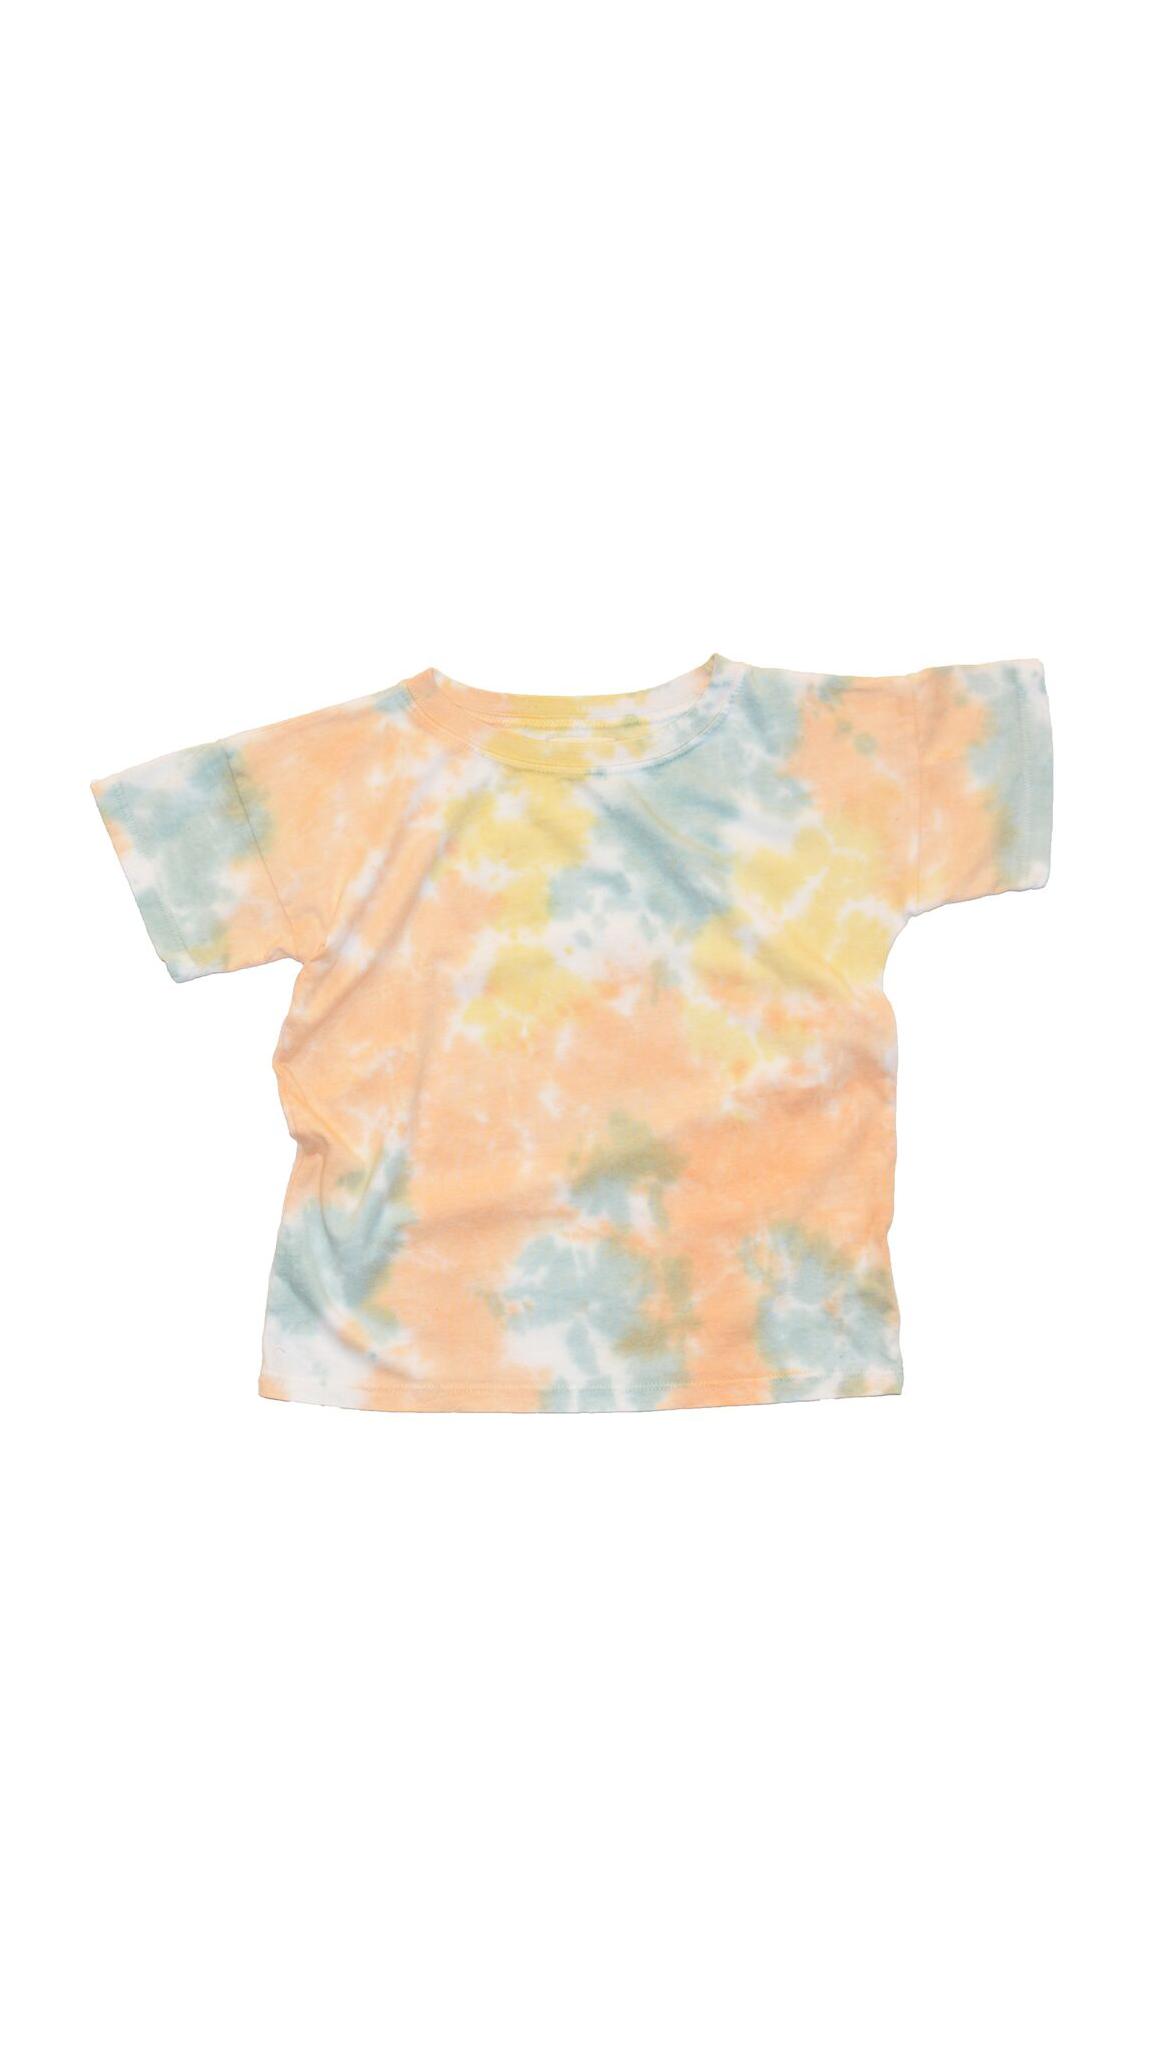 Little Urban Apparel, Boxy Tee - Earth Tie Dye